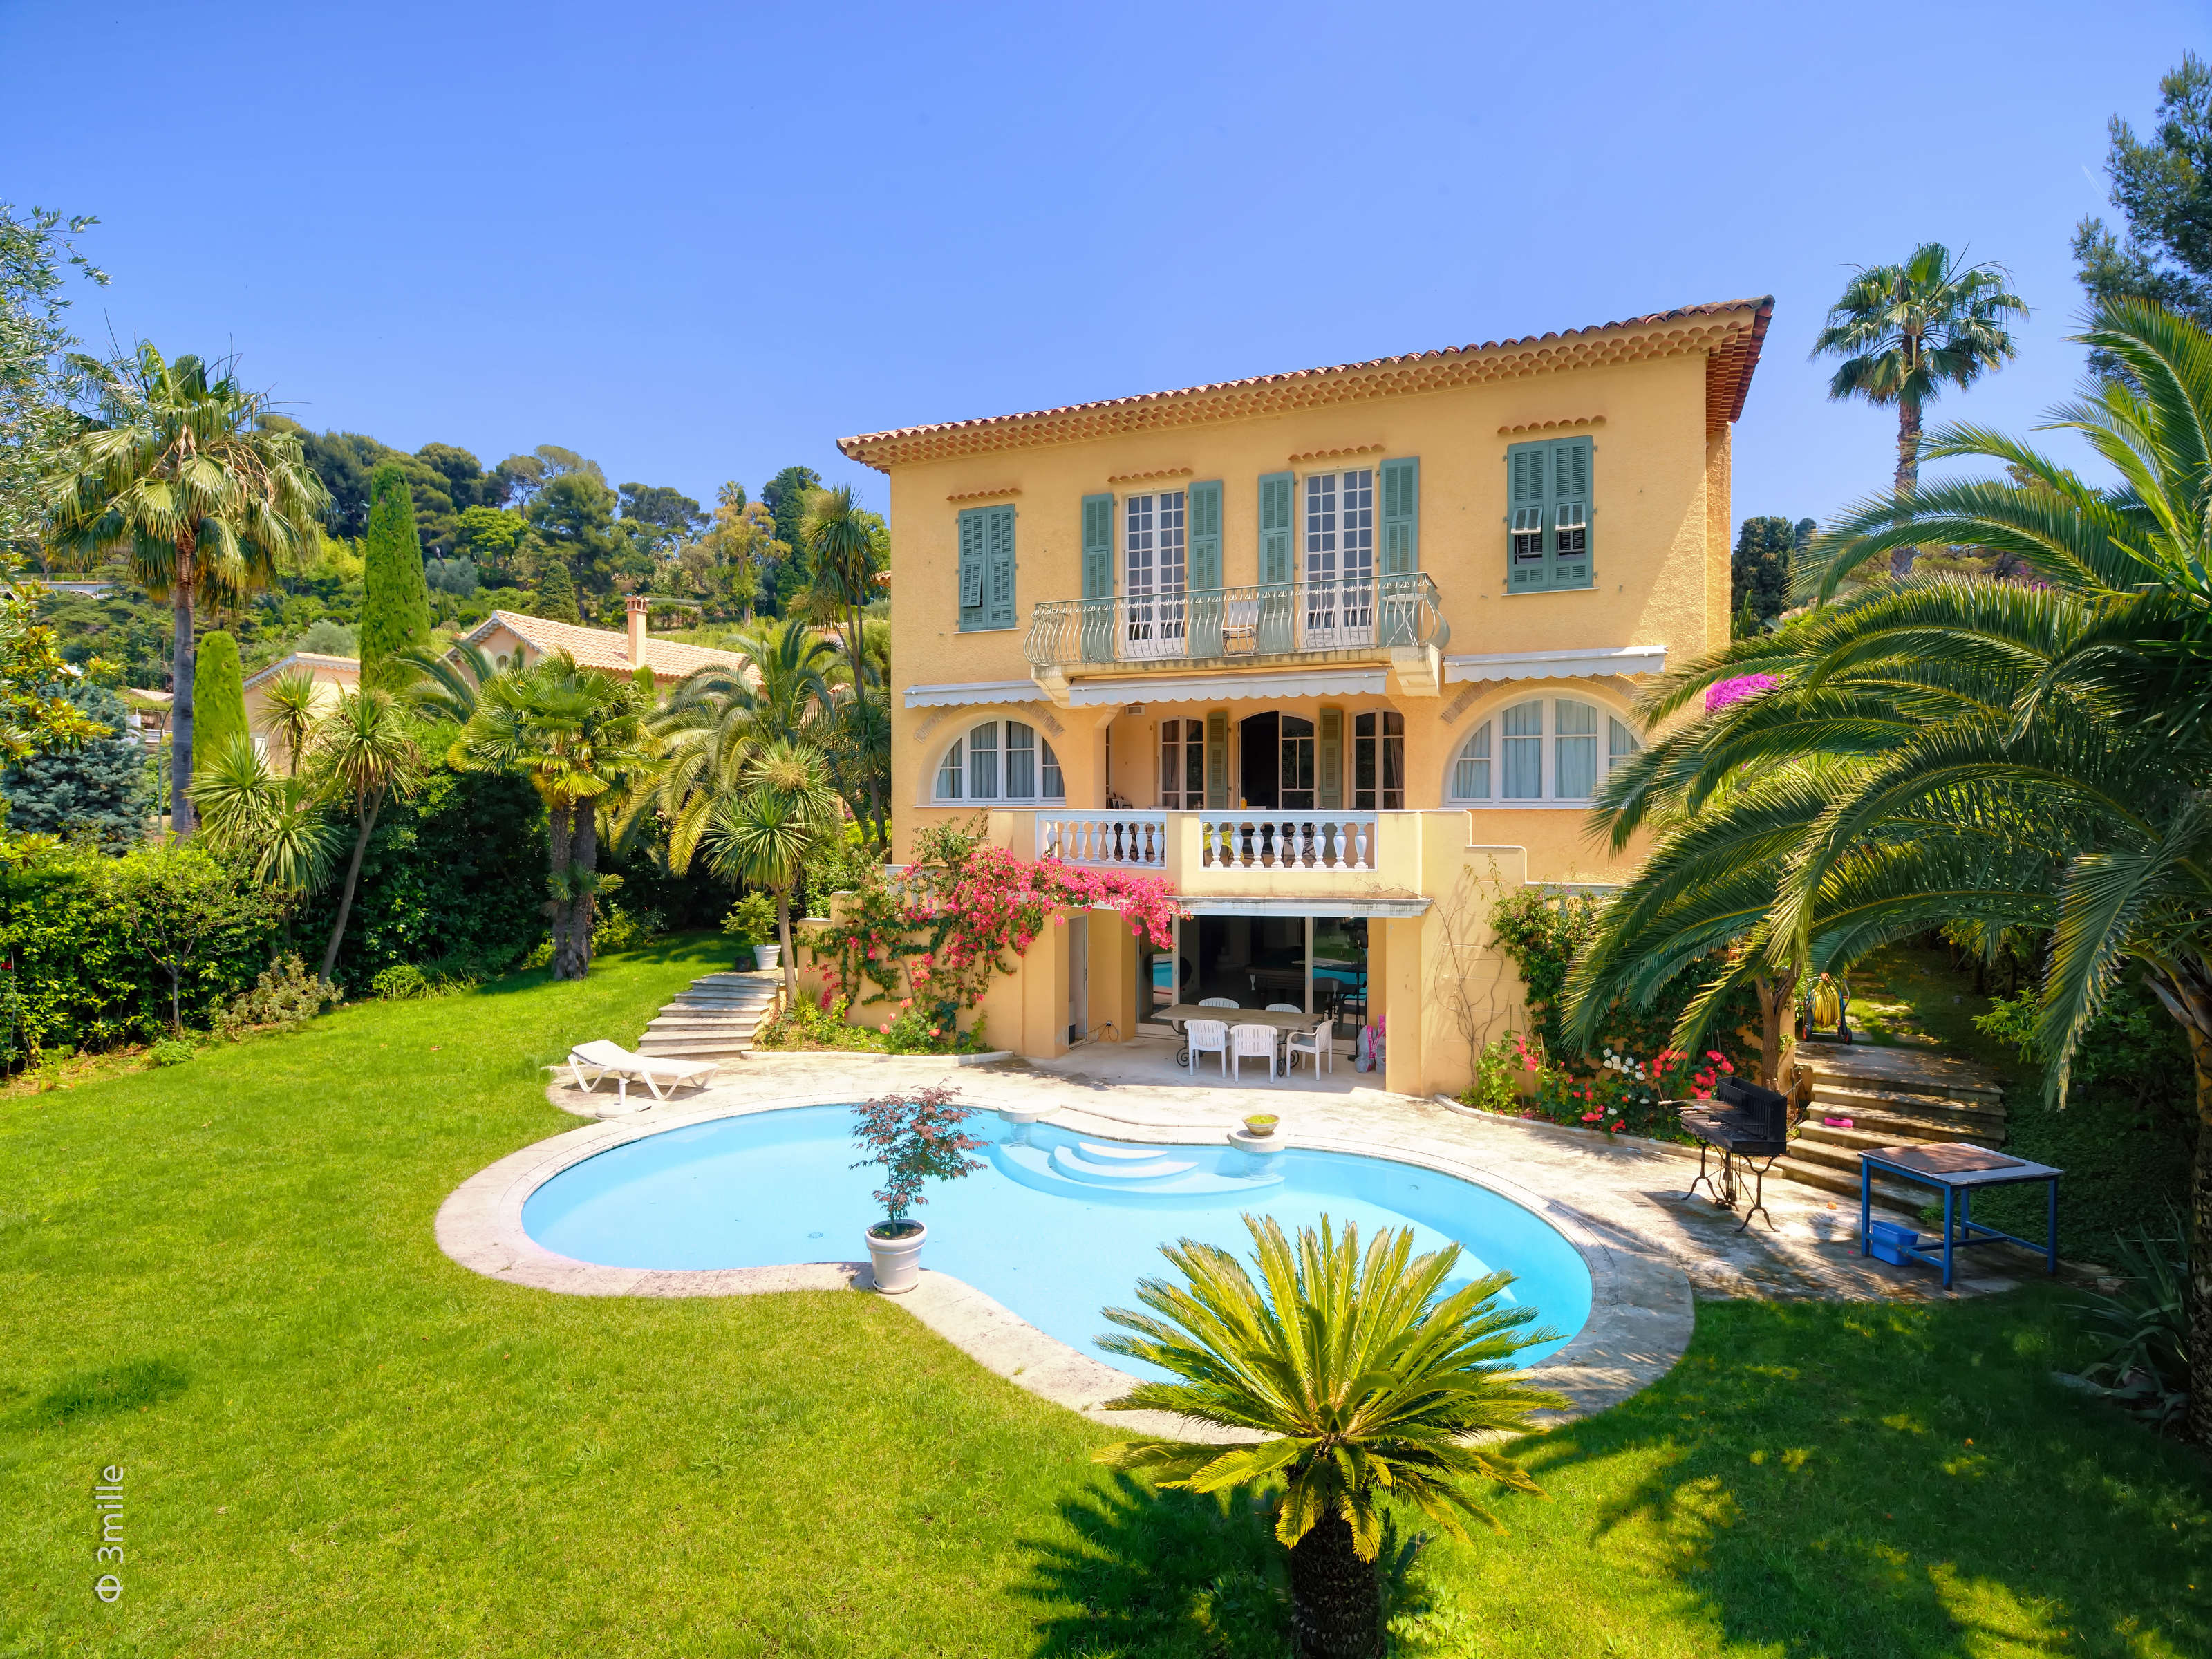 獨棟家庭住宅 為 出售 在 Charming Villa for sale in a private domain, Cap Ferrat Saint Jean Cap Ferrat Saint Jean Cap Ferrat, 普羅旺斯阿爾卑斯藍色海岸 06230 法國